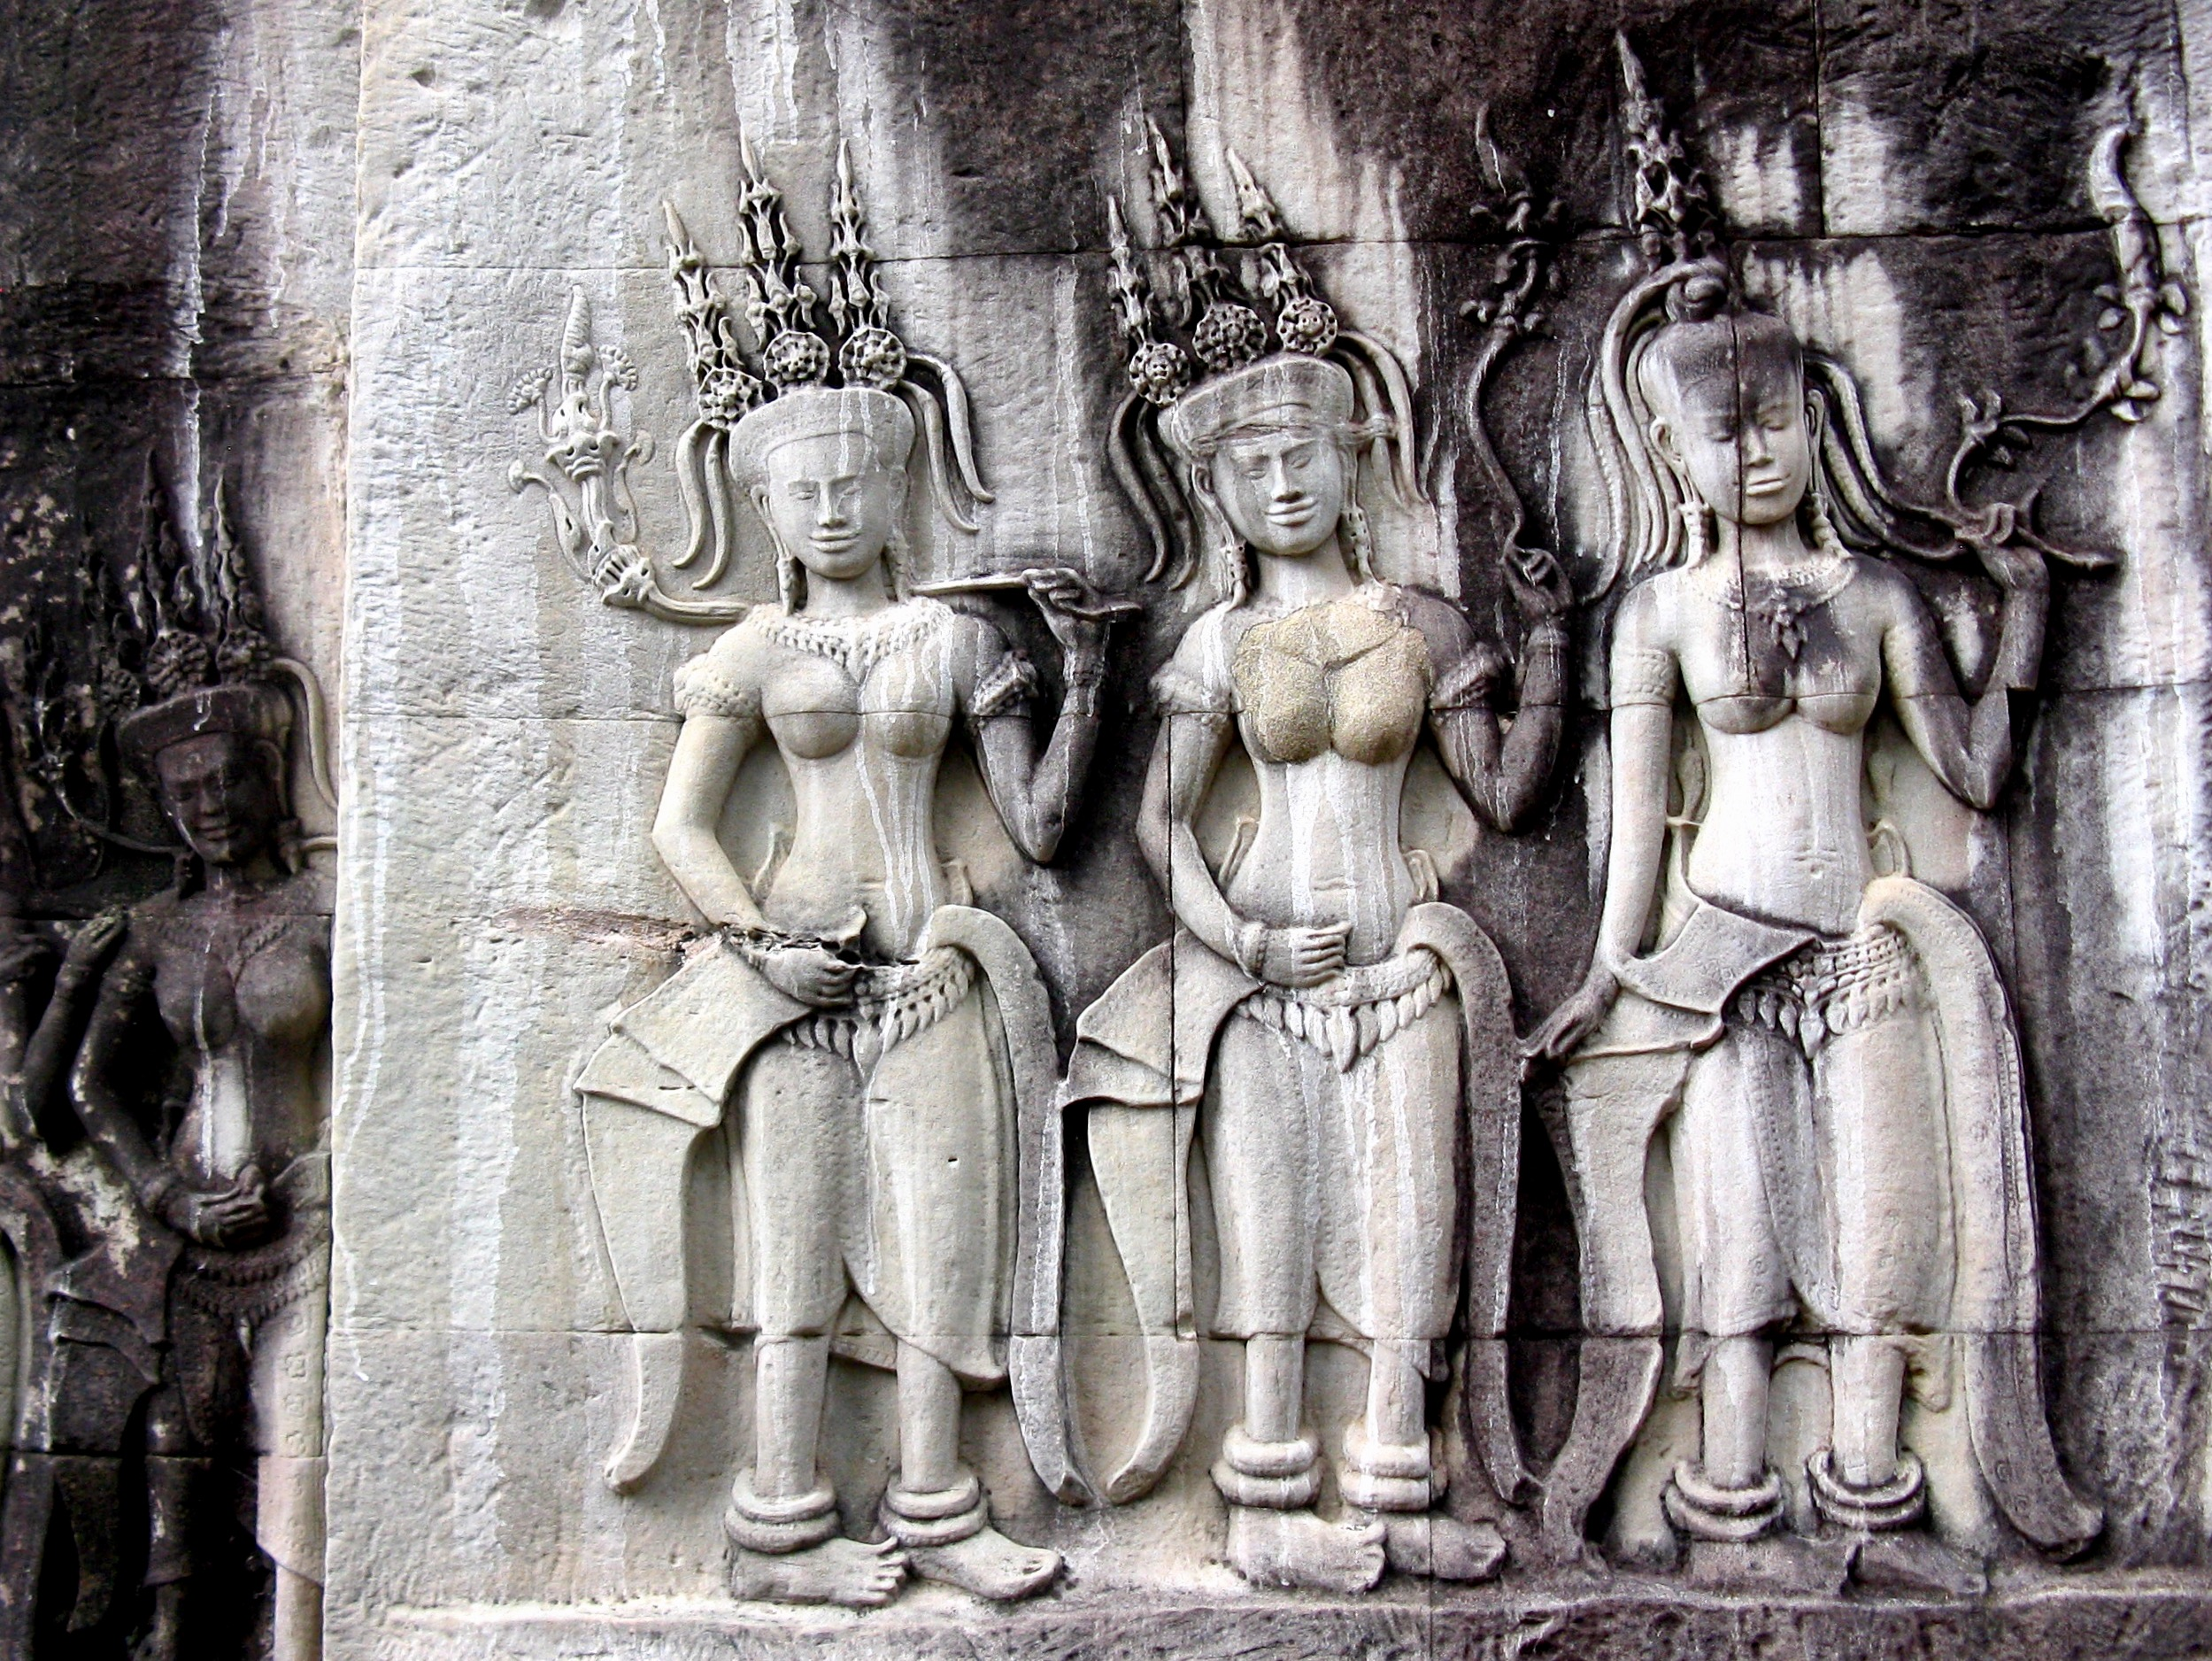 Three of the 3,000 depictions of buxom celestial spirits known as apsaras